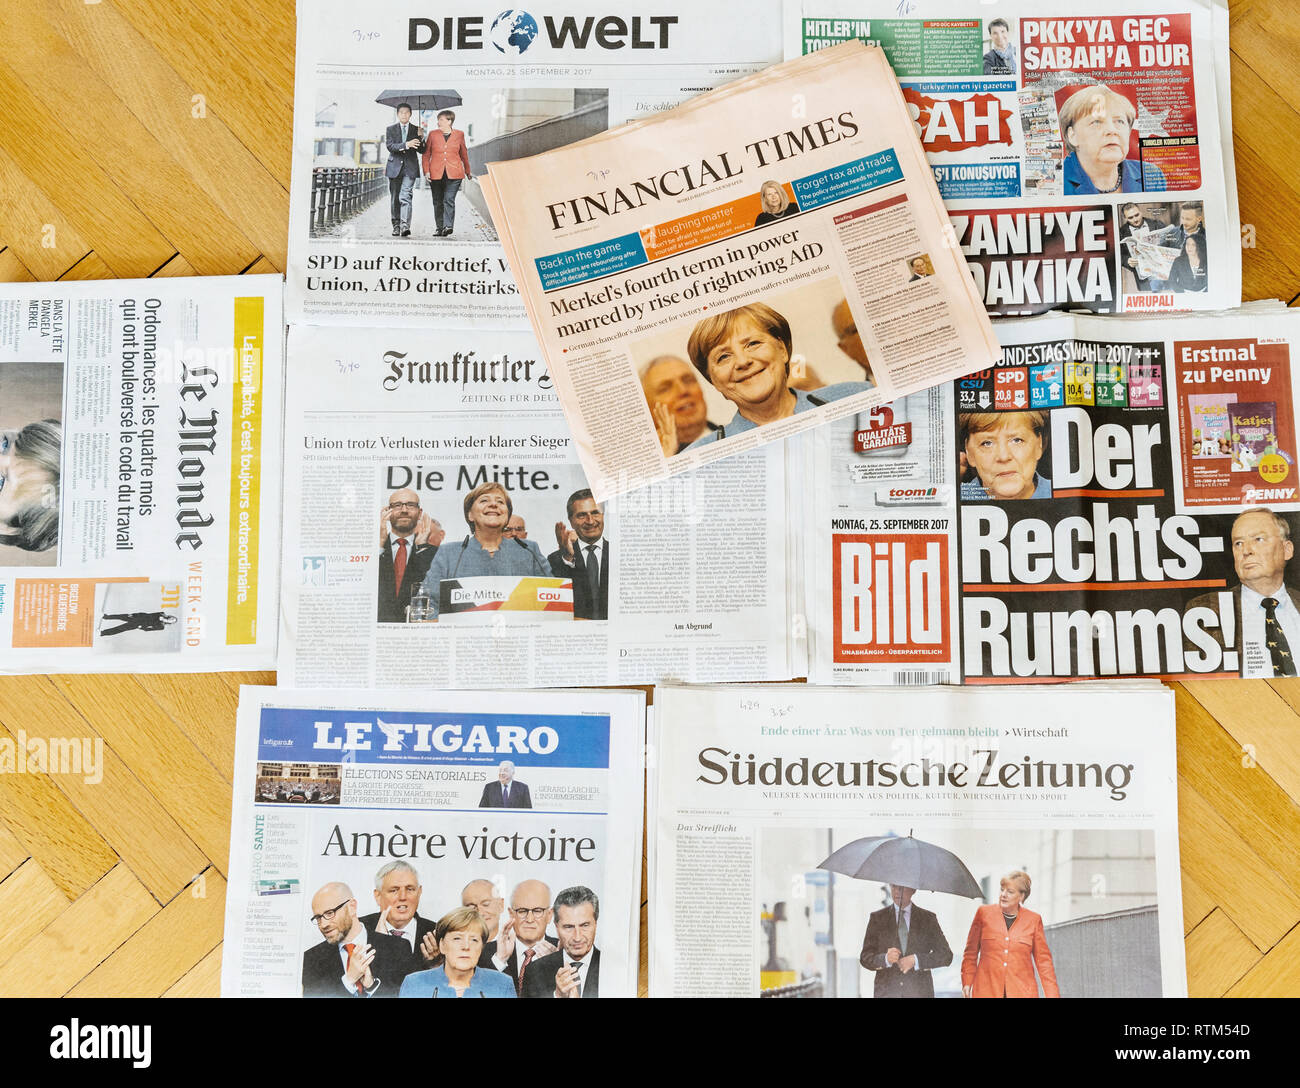 PARIS, FRANCE - SEP 25, 2017: International newspaper with Financial Times portrait of Angela Merkel after election in Germany for the Chancellor of Germany, the head of the federal government - Stock Image